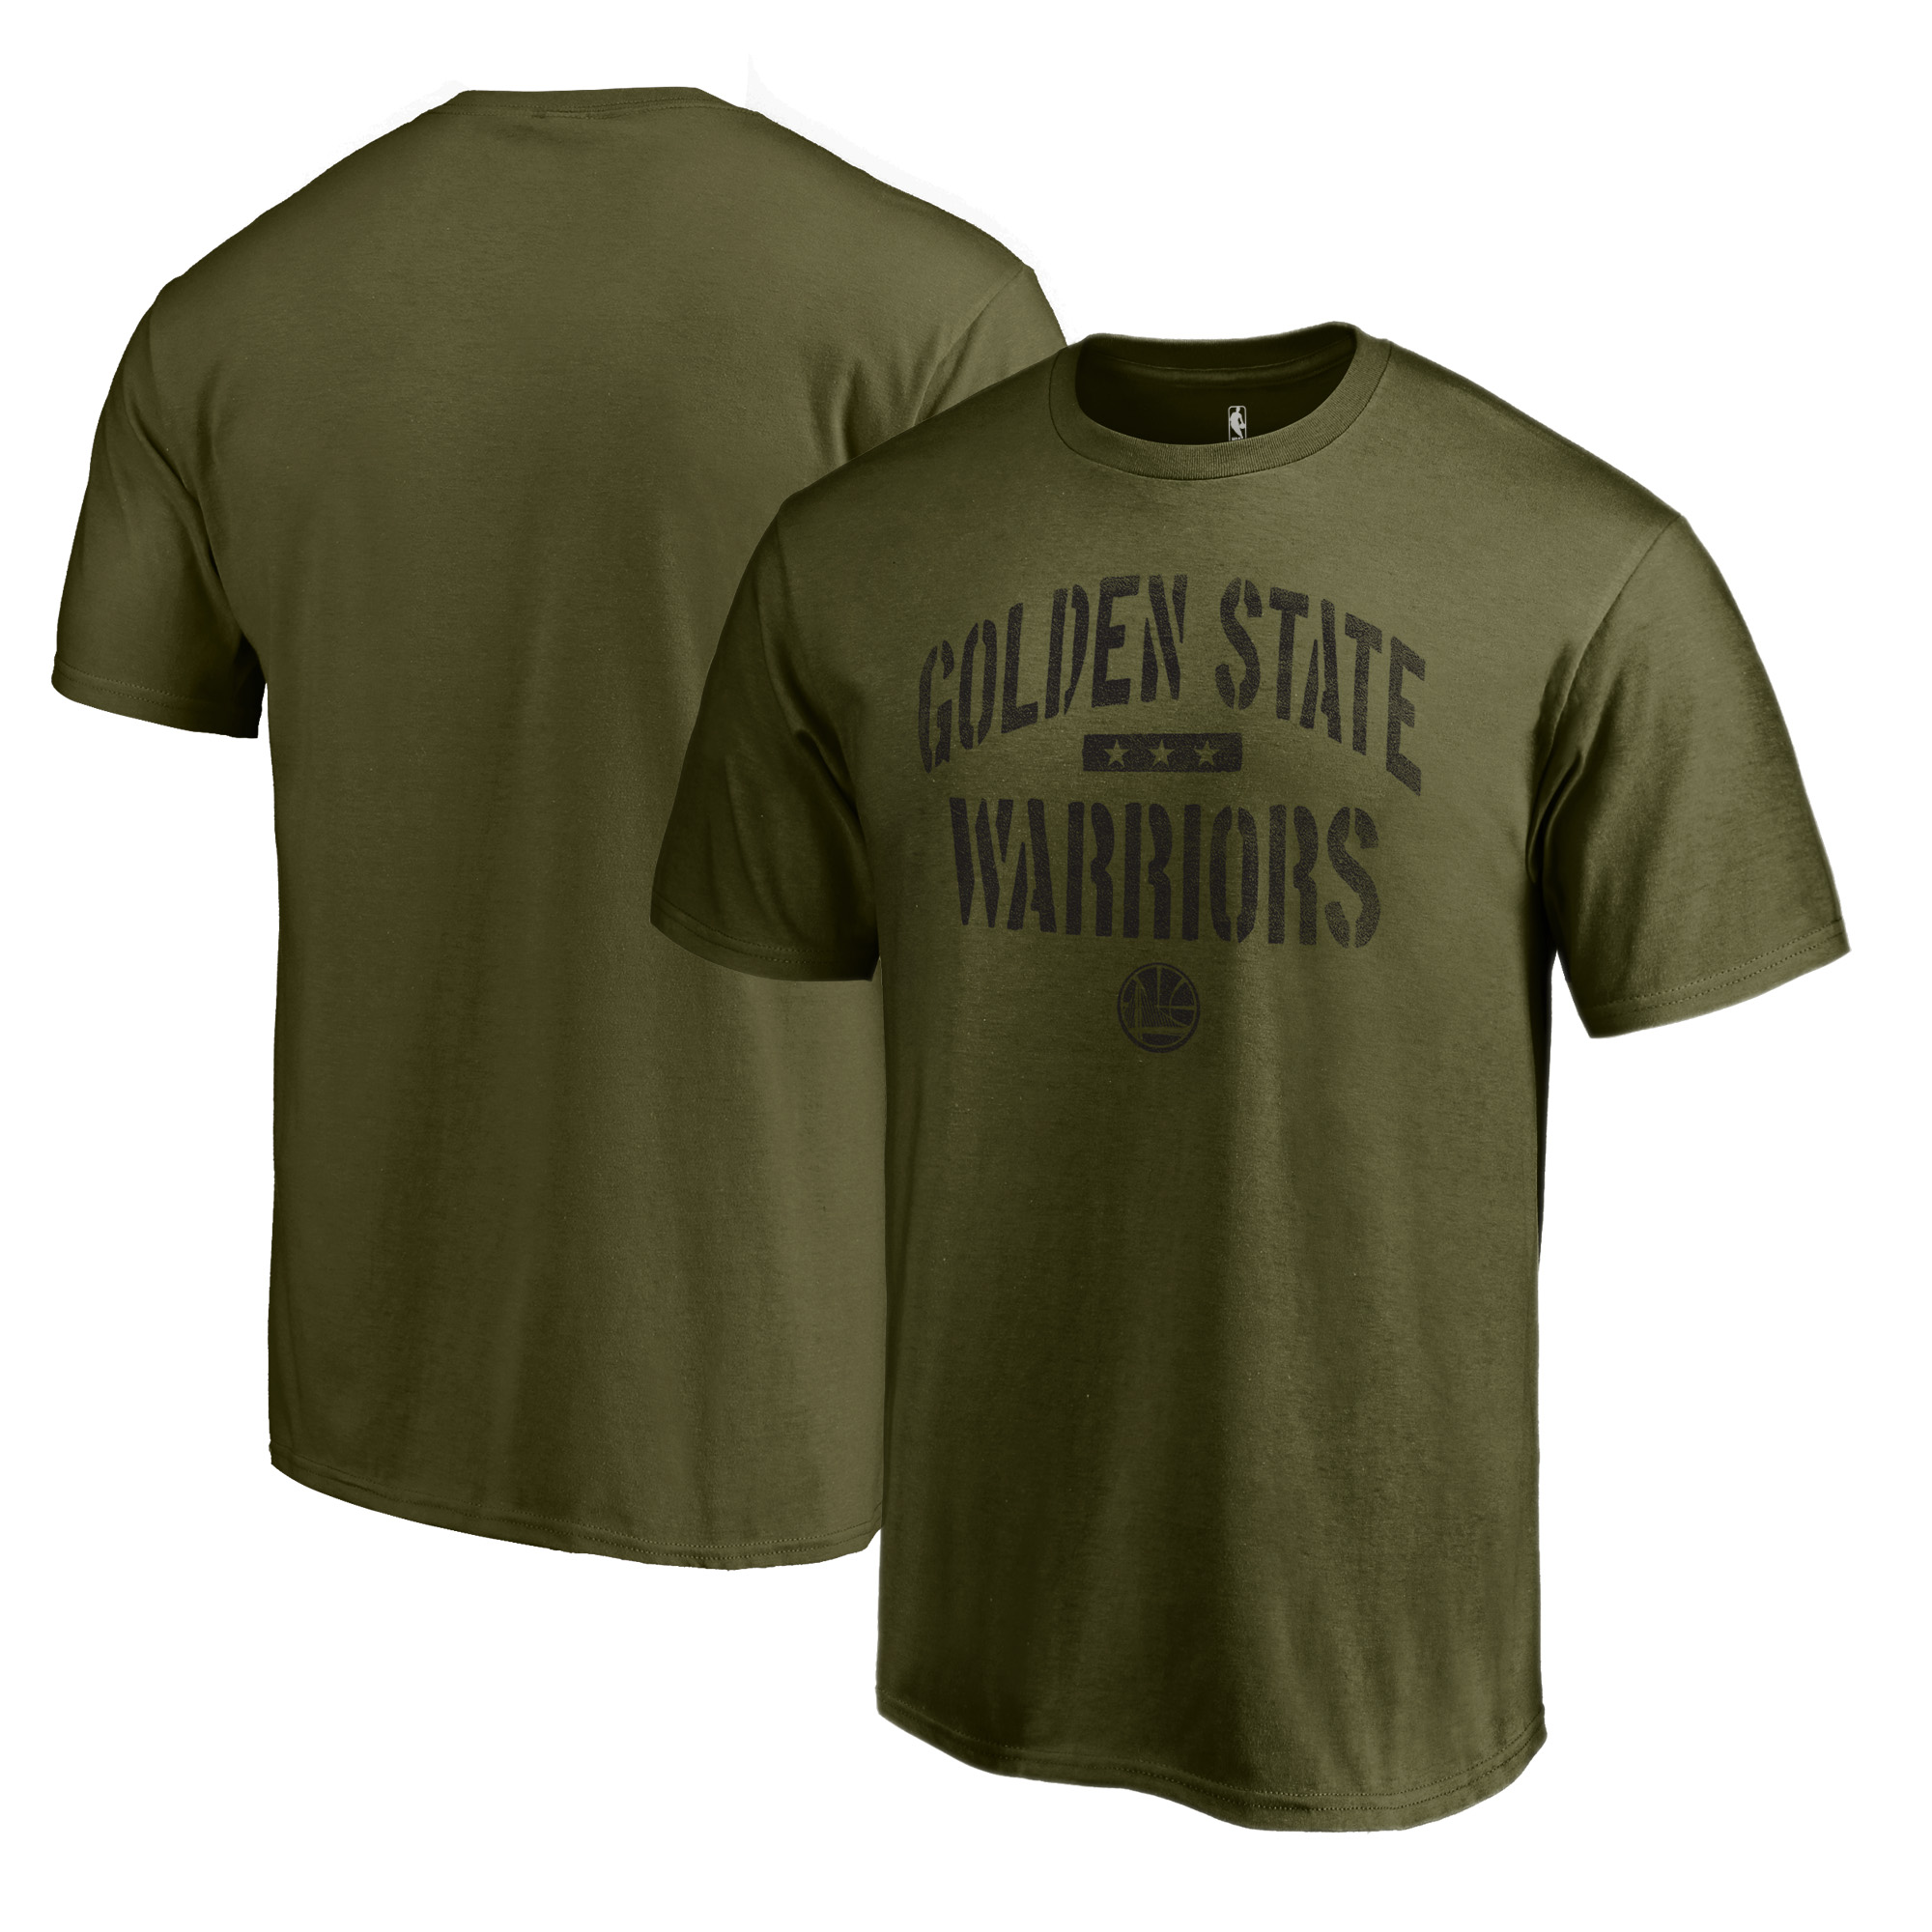 Golden State Warriors Fanatics Branded Camo Collection Jungle T-Shirt - Green